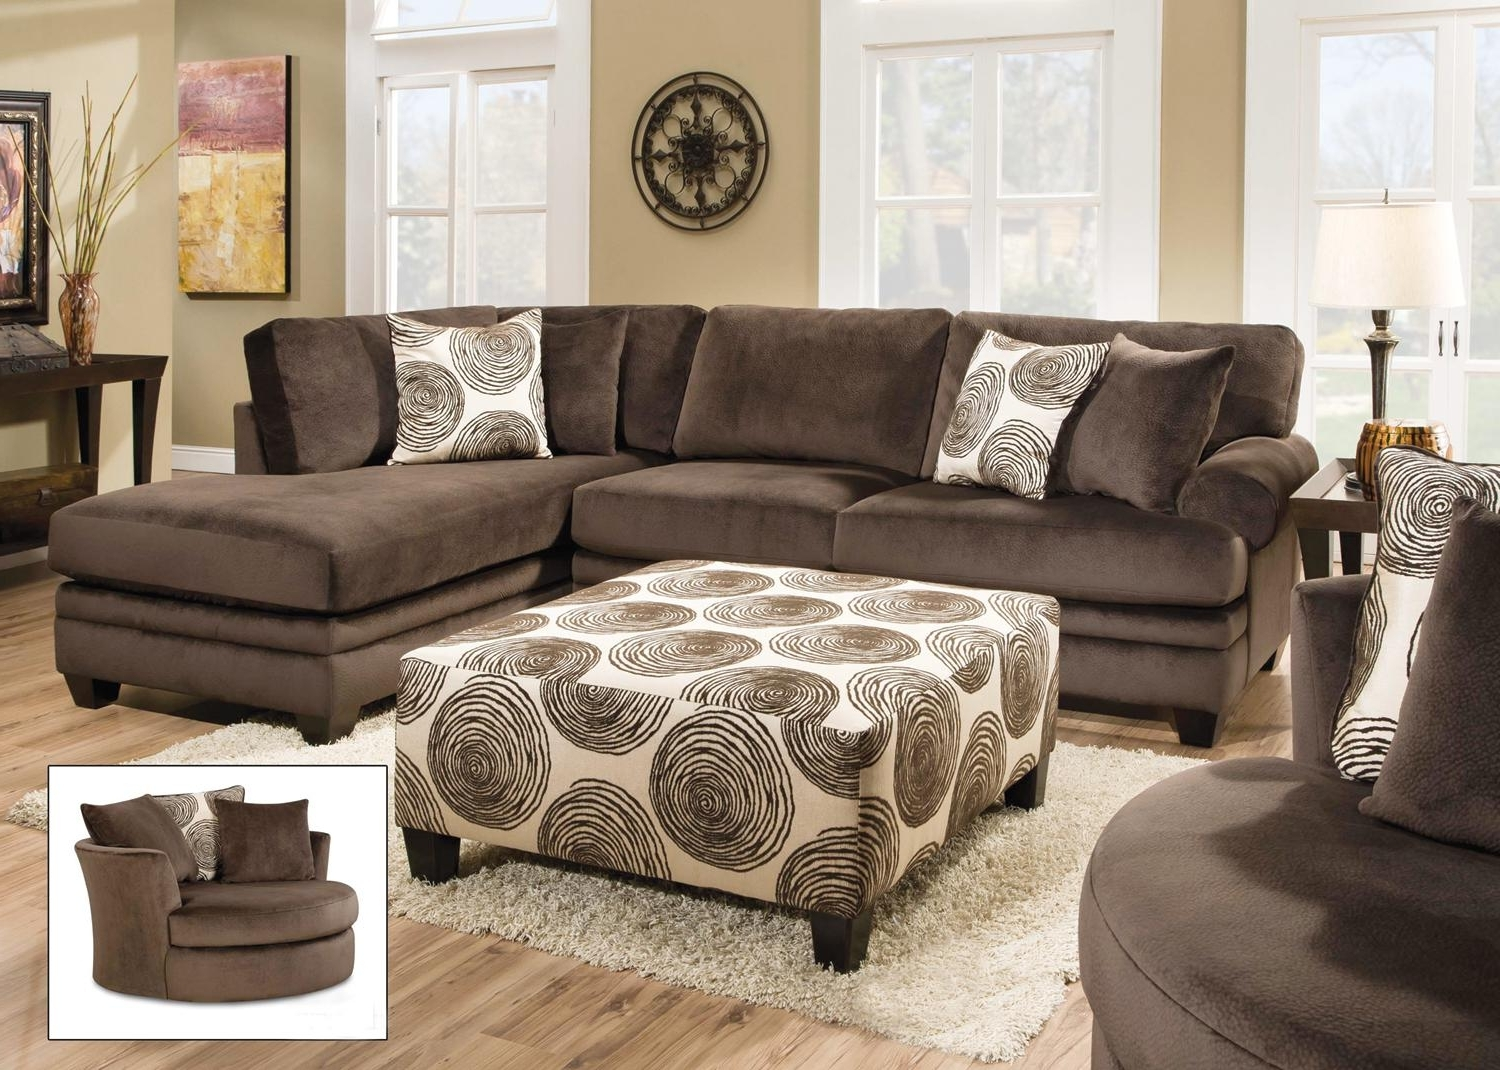 Sectional Sofas At Birmingham Al Intended For Trendy Furniture : Big Lots Couch New New Sectional Sleeper Sofa Big Lots (View 12 of 20)